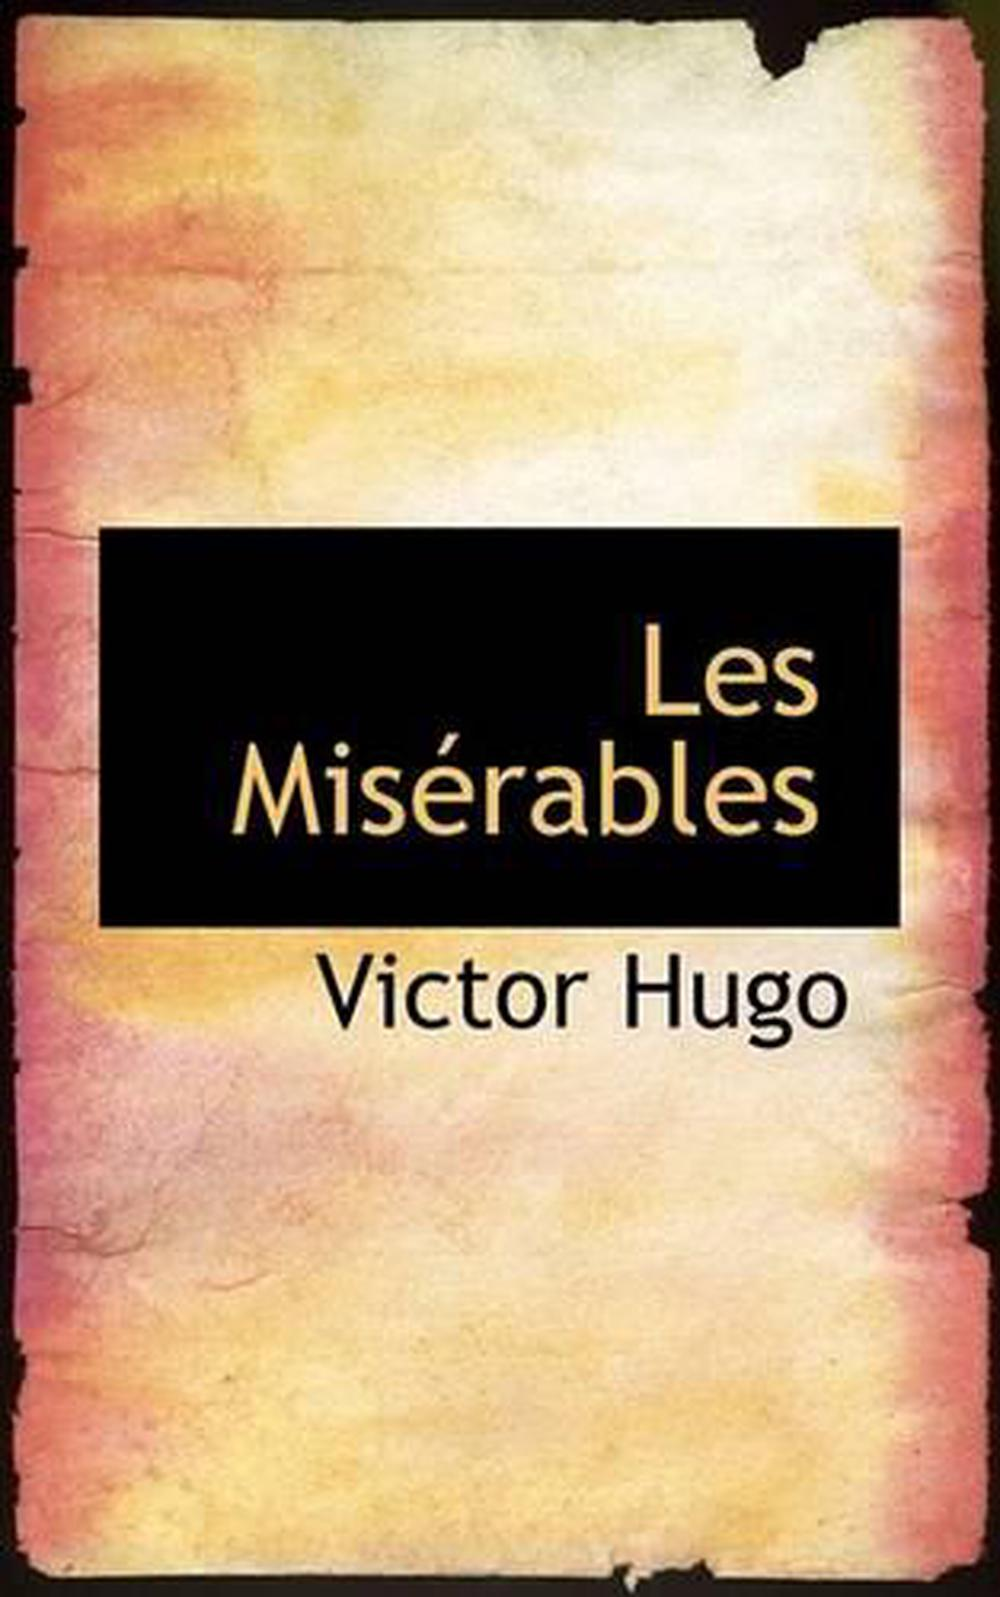 Mis Hogos Details About Miserables By Victor Hugo English Paperback Book Free Shipping